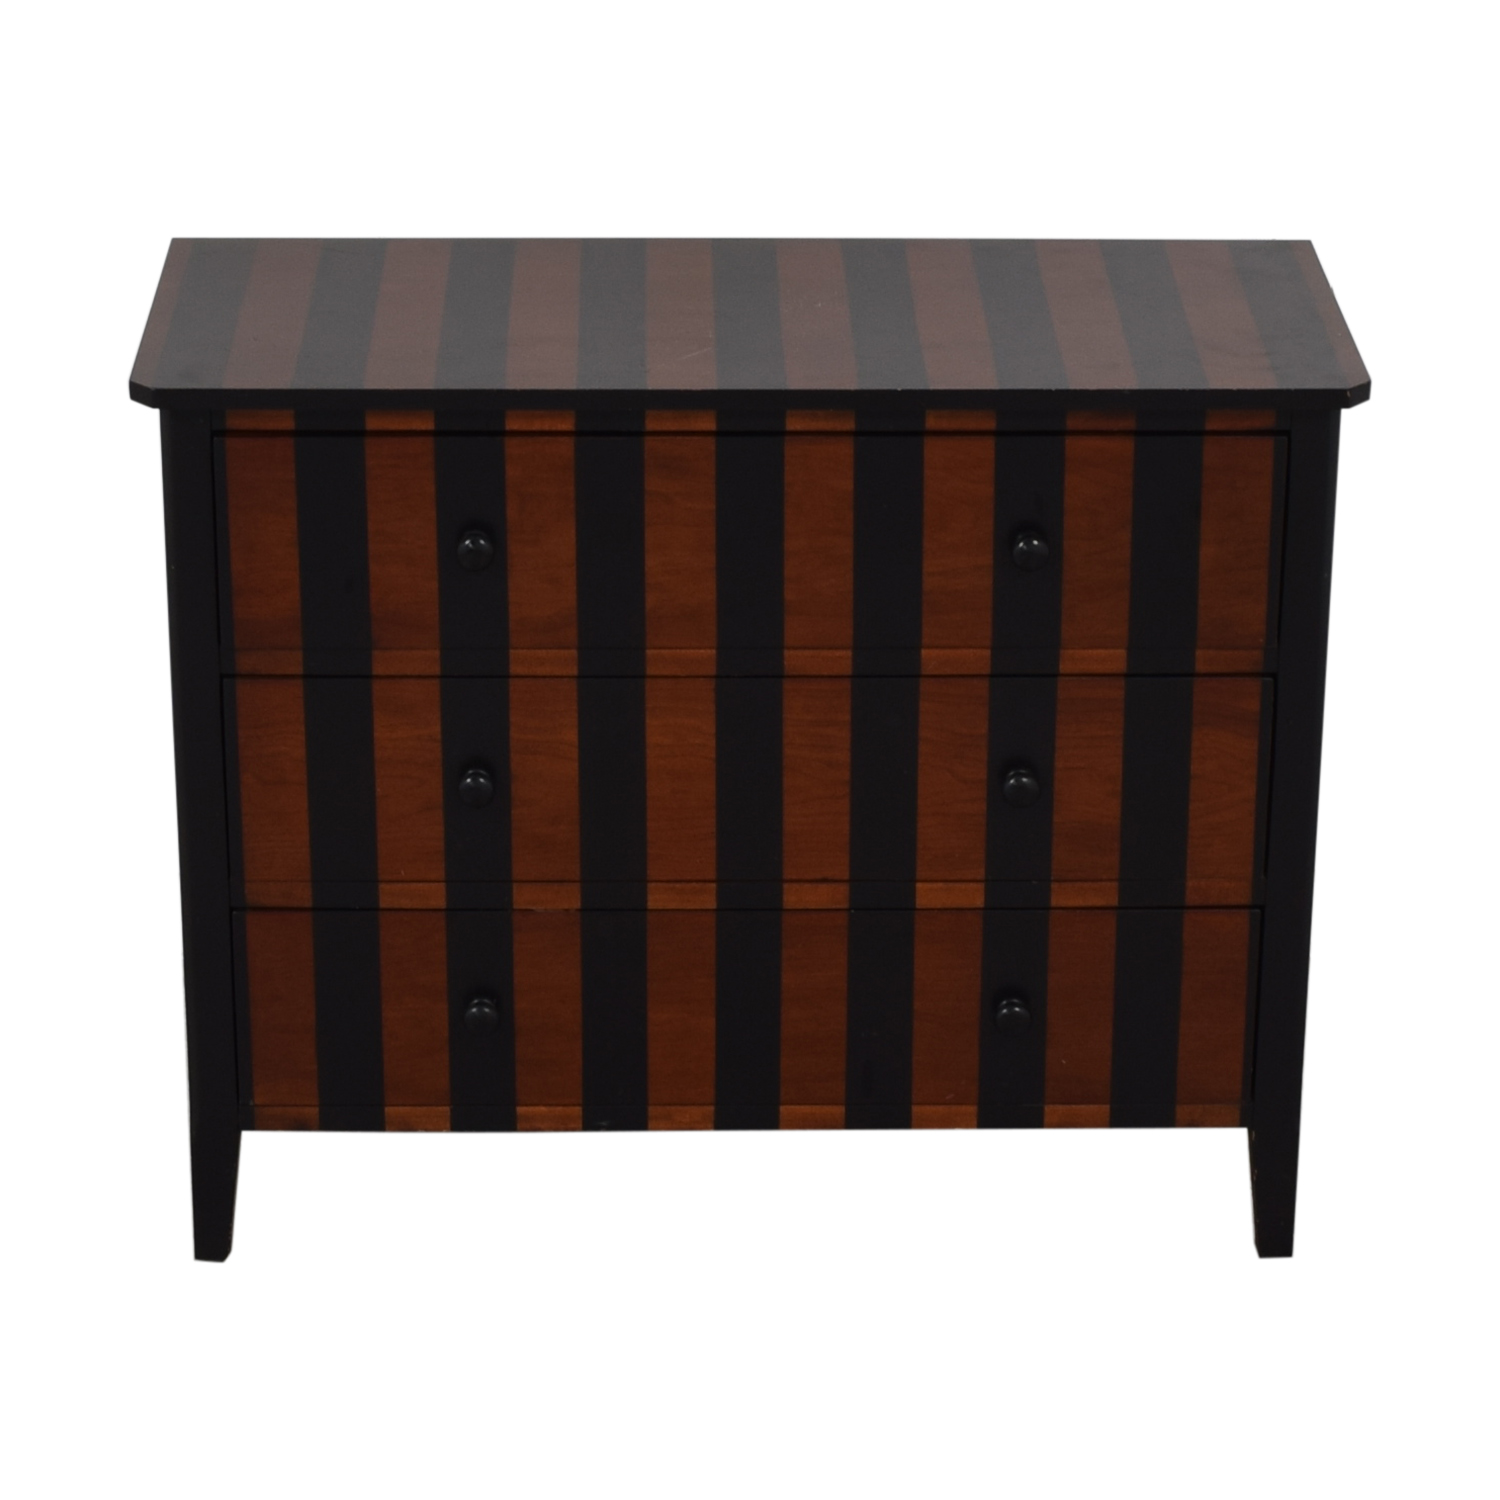 Bassett Furniture Bassett Furniture Striped Three-Drawer Dresser dimensions